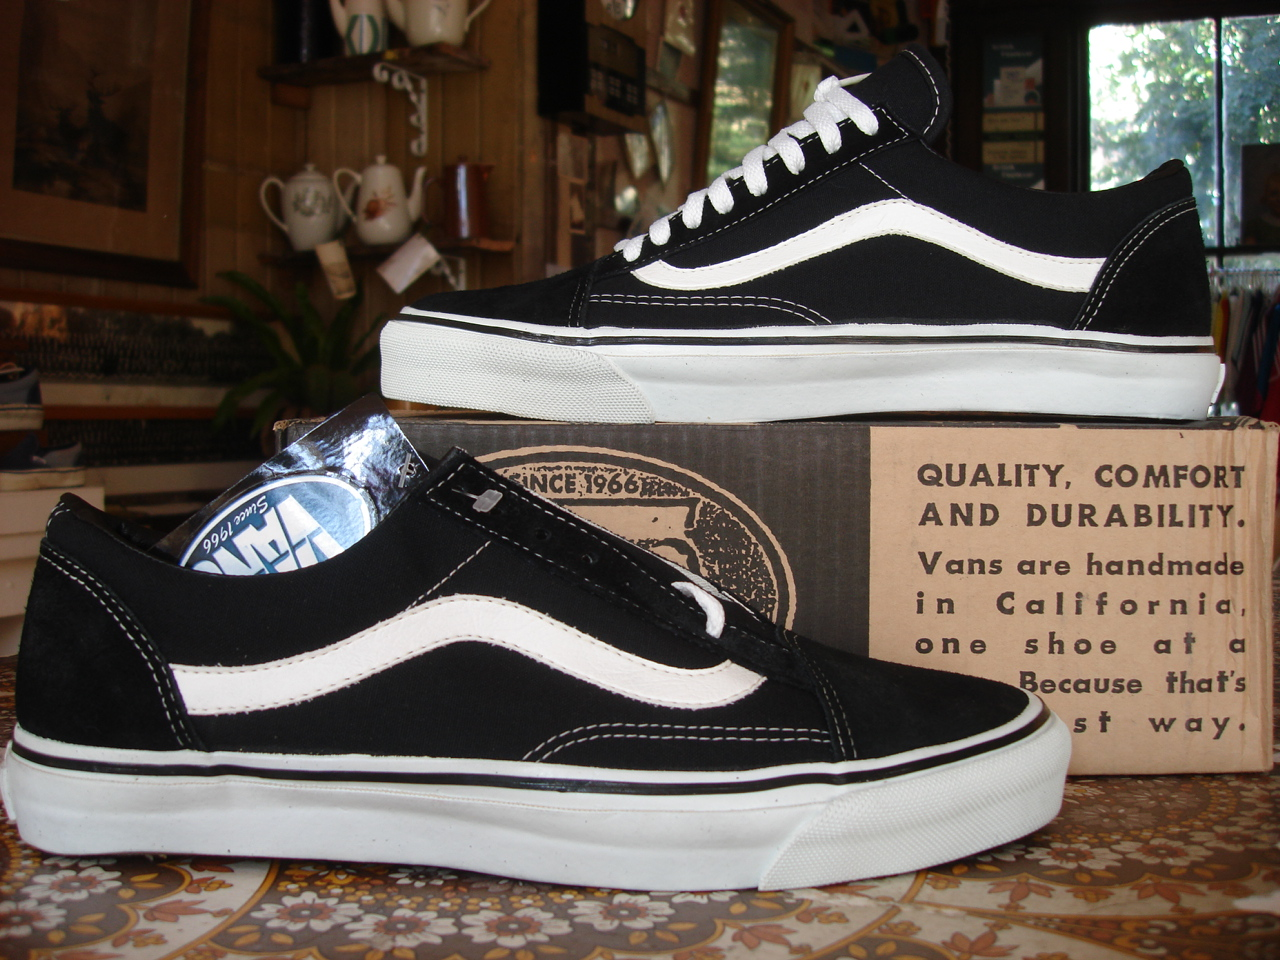 27988a087685 theothersideofthepillow  vintage VANS black suede OLD SKOOL style  36 MADE  IN USA US12 minor threat punk